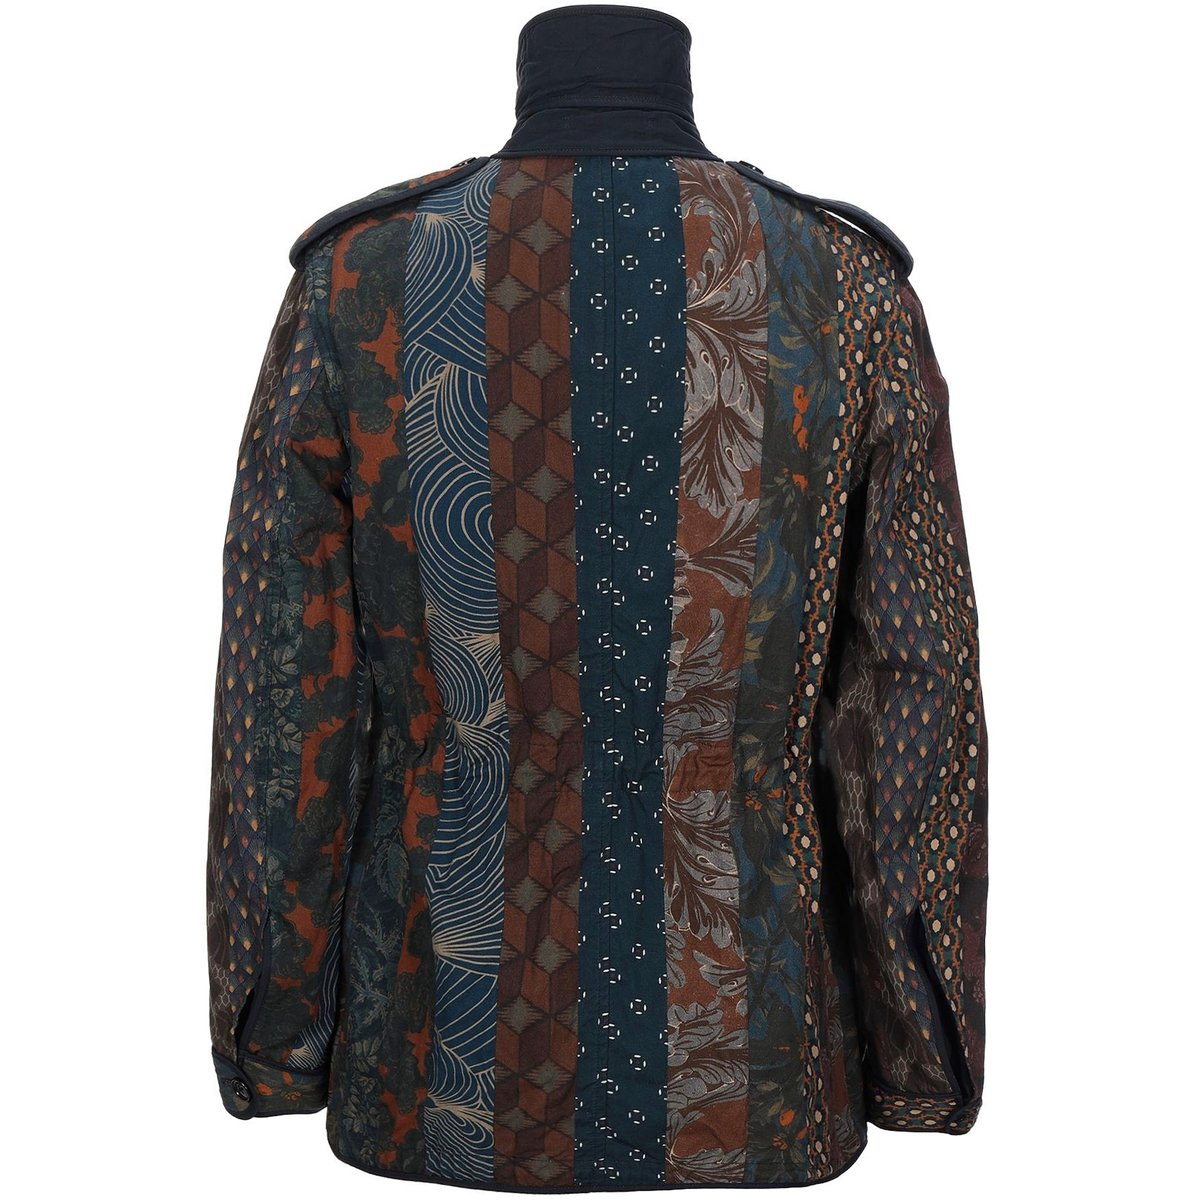 Dries Van Noten Patchwork Print Safari Jacket3.jpg